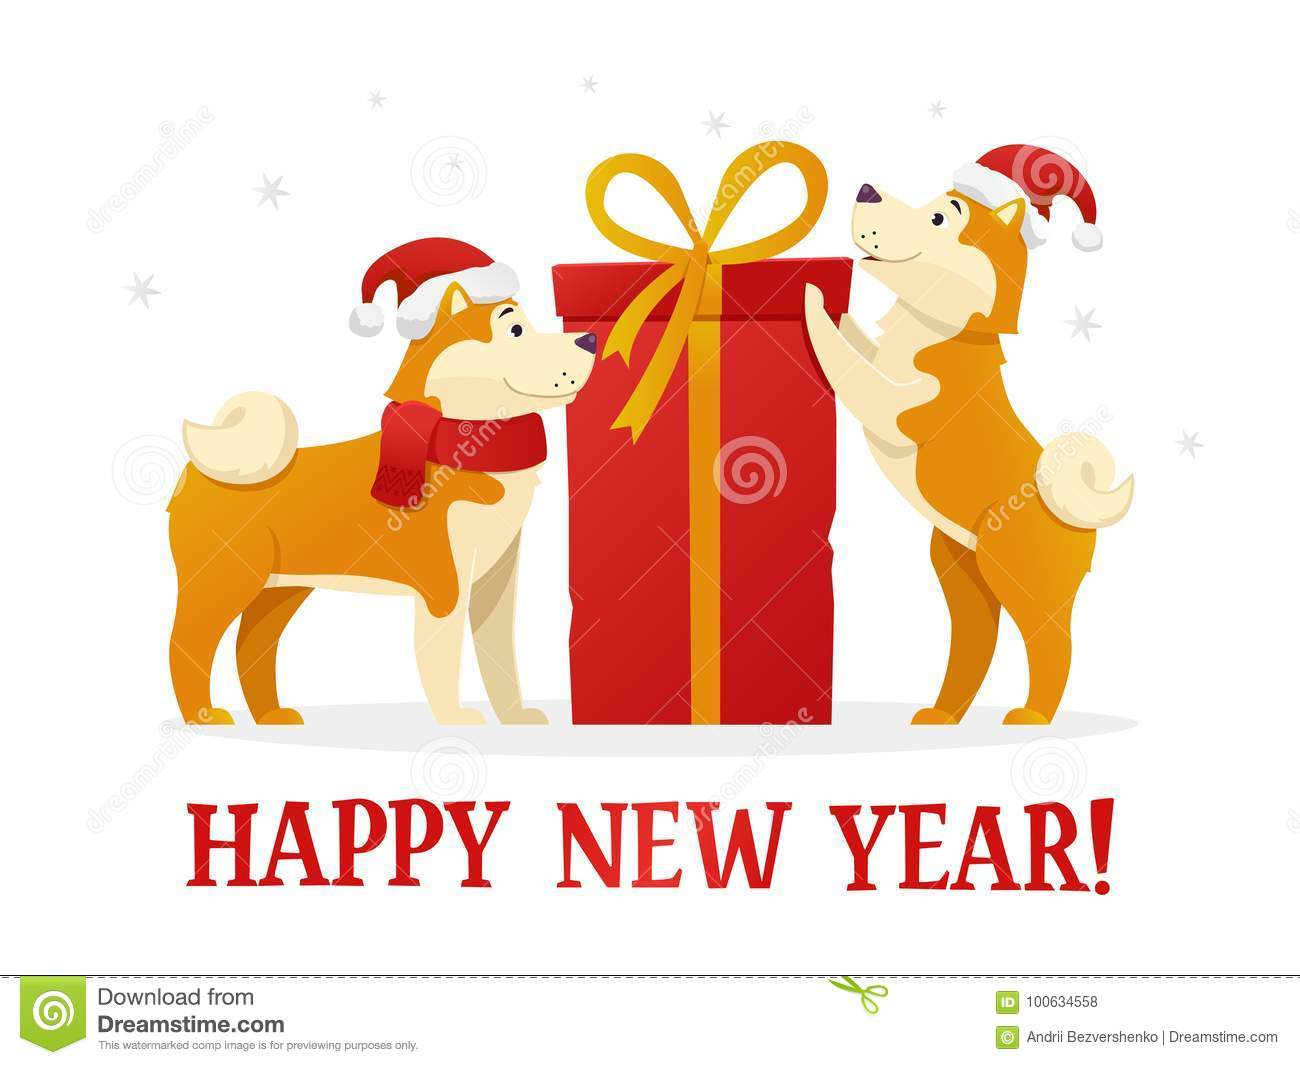 happy new year 2018 postcard template with two cute yellow dogs with the dig red gift